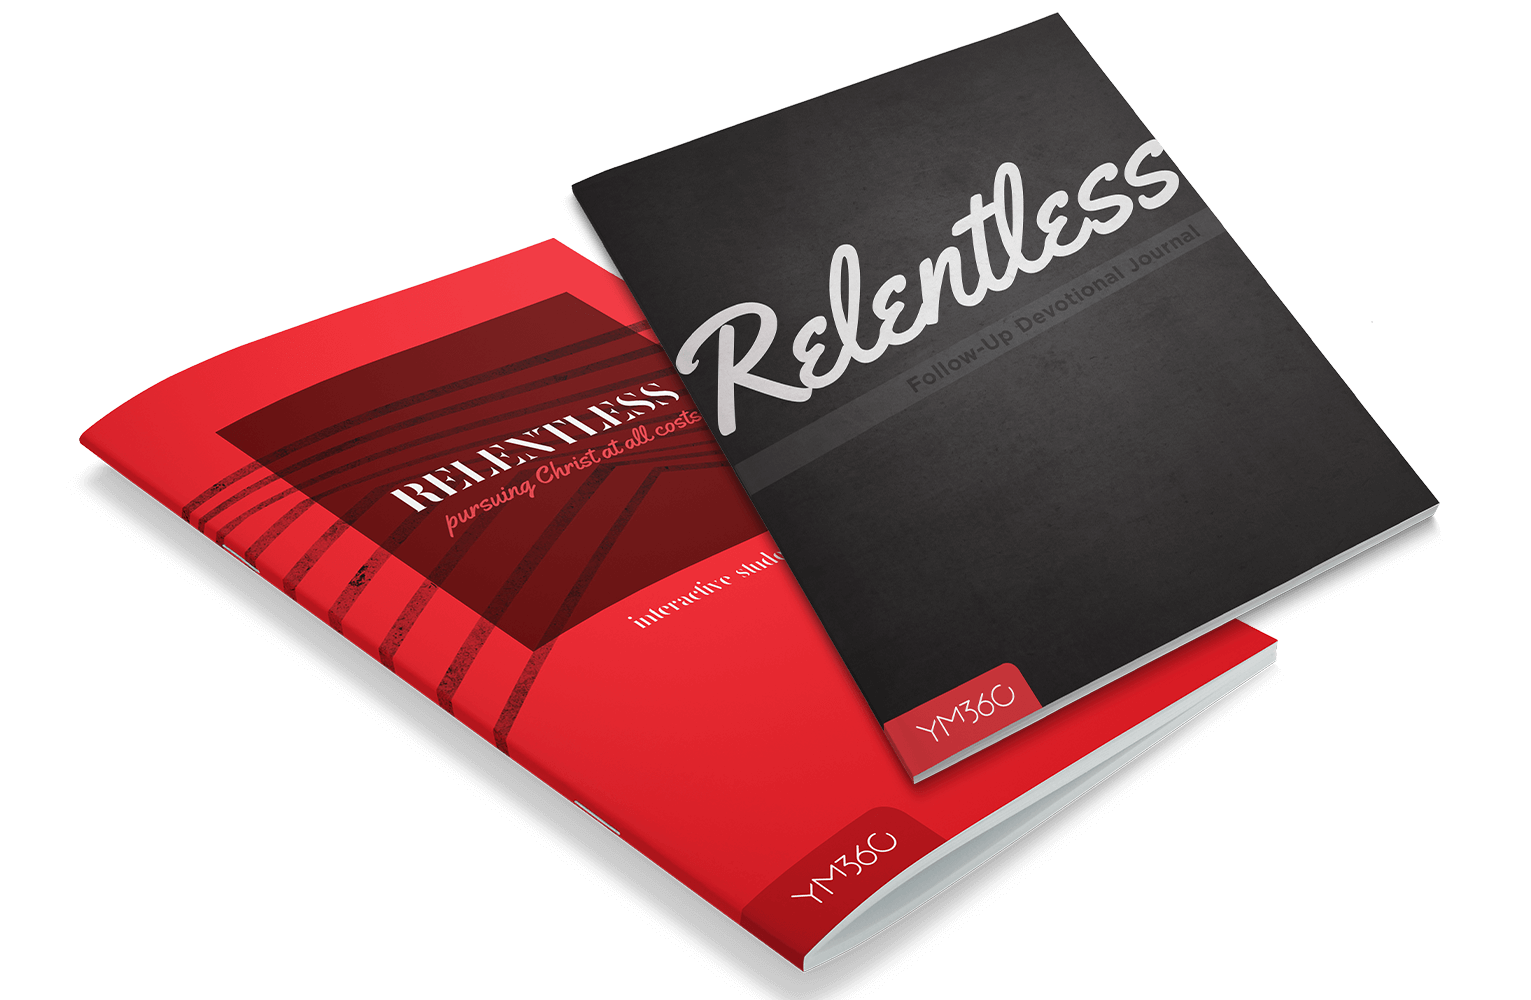 Relentless Book Bundle